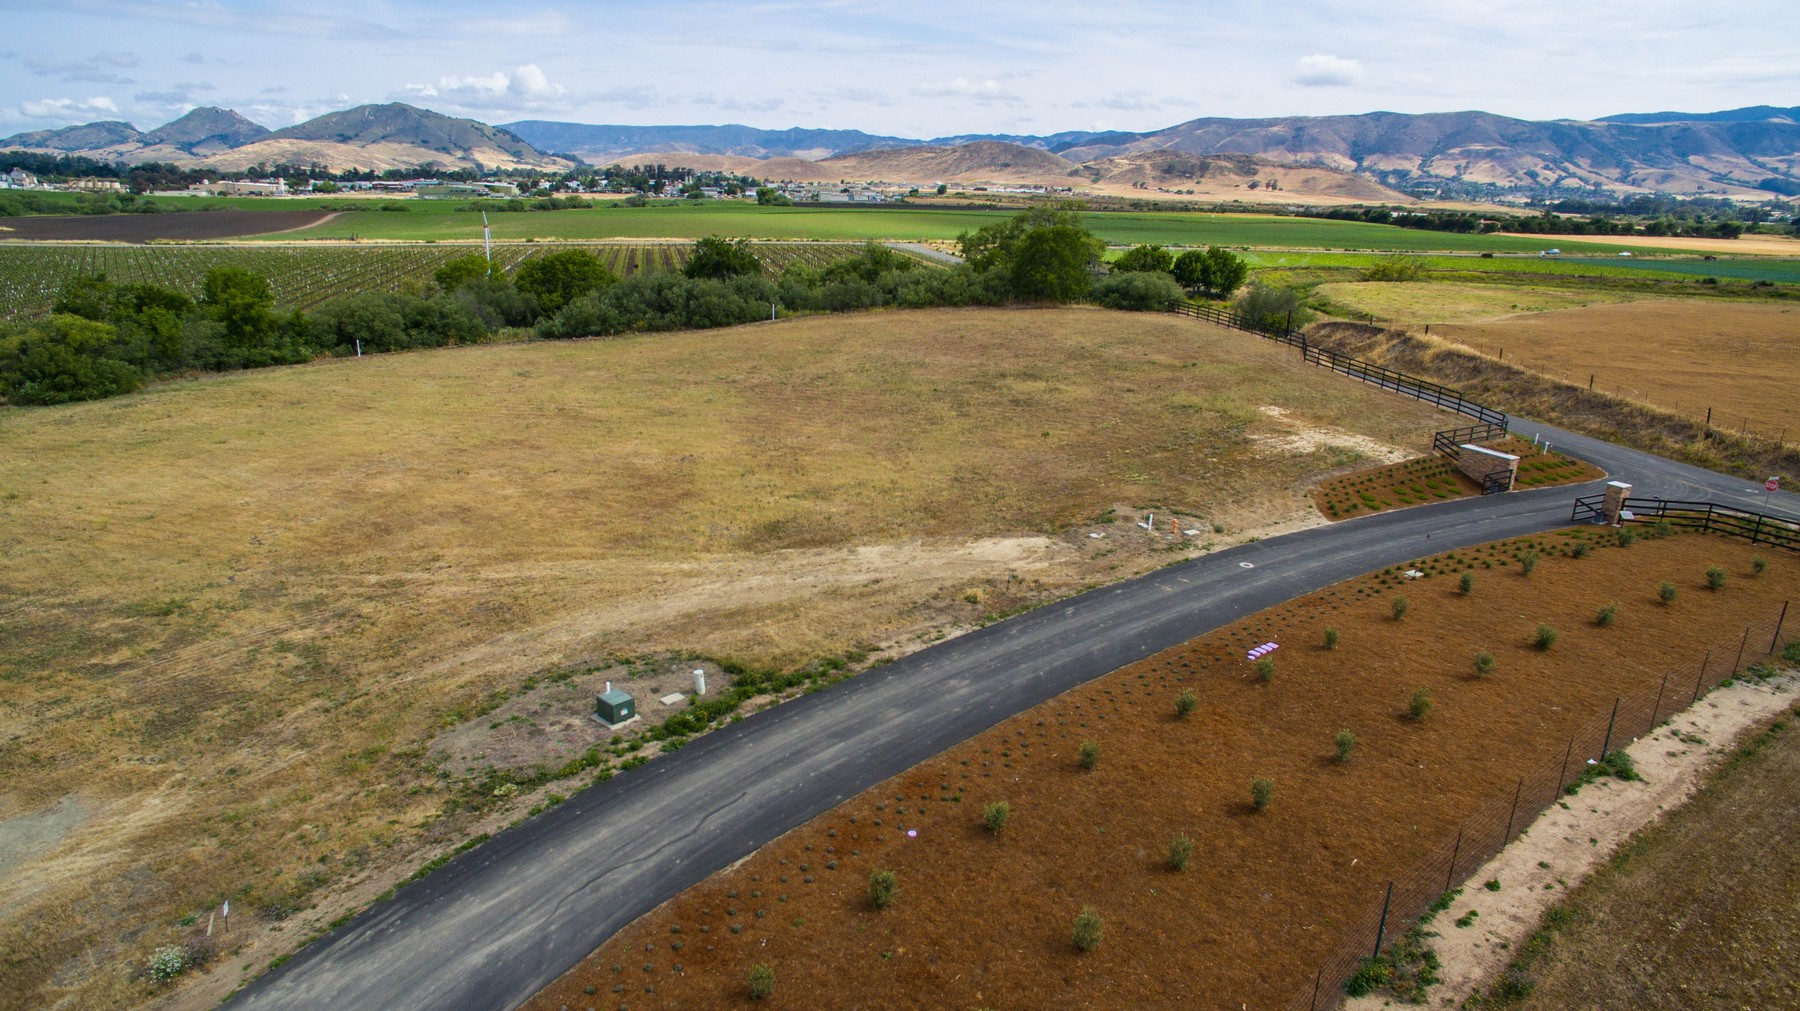 Land for Sale at One Acre Creekside Parcel Jespersen Road #Lot 3 San Luis Obispo, California 93401 United States